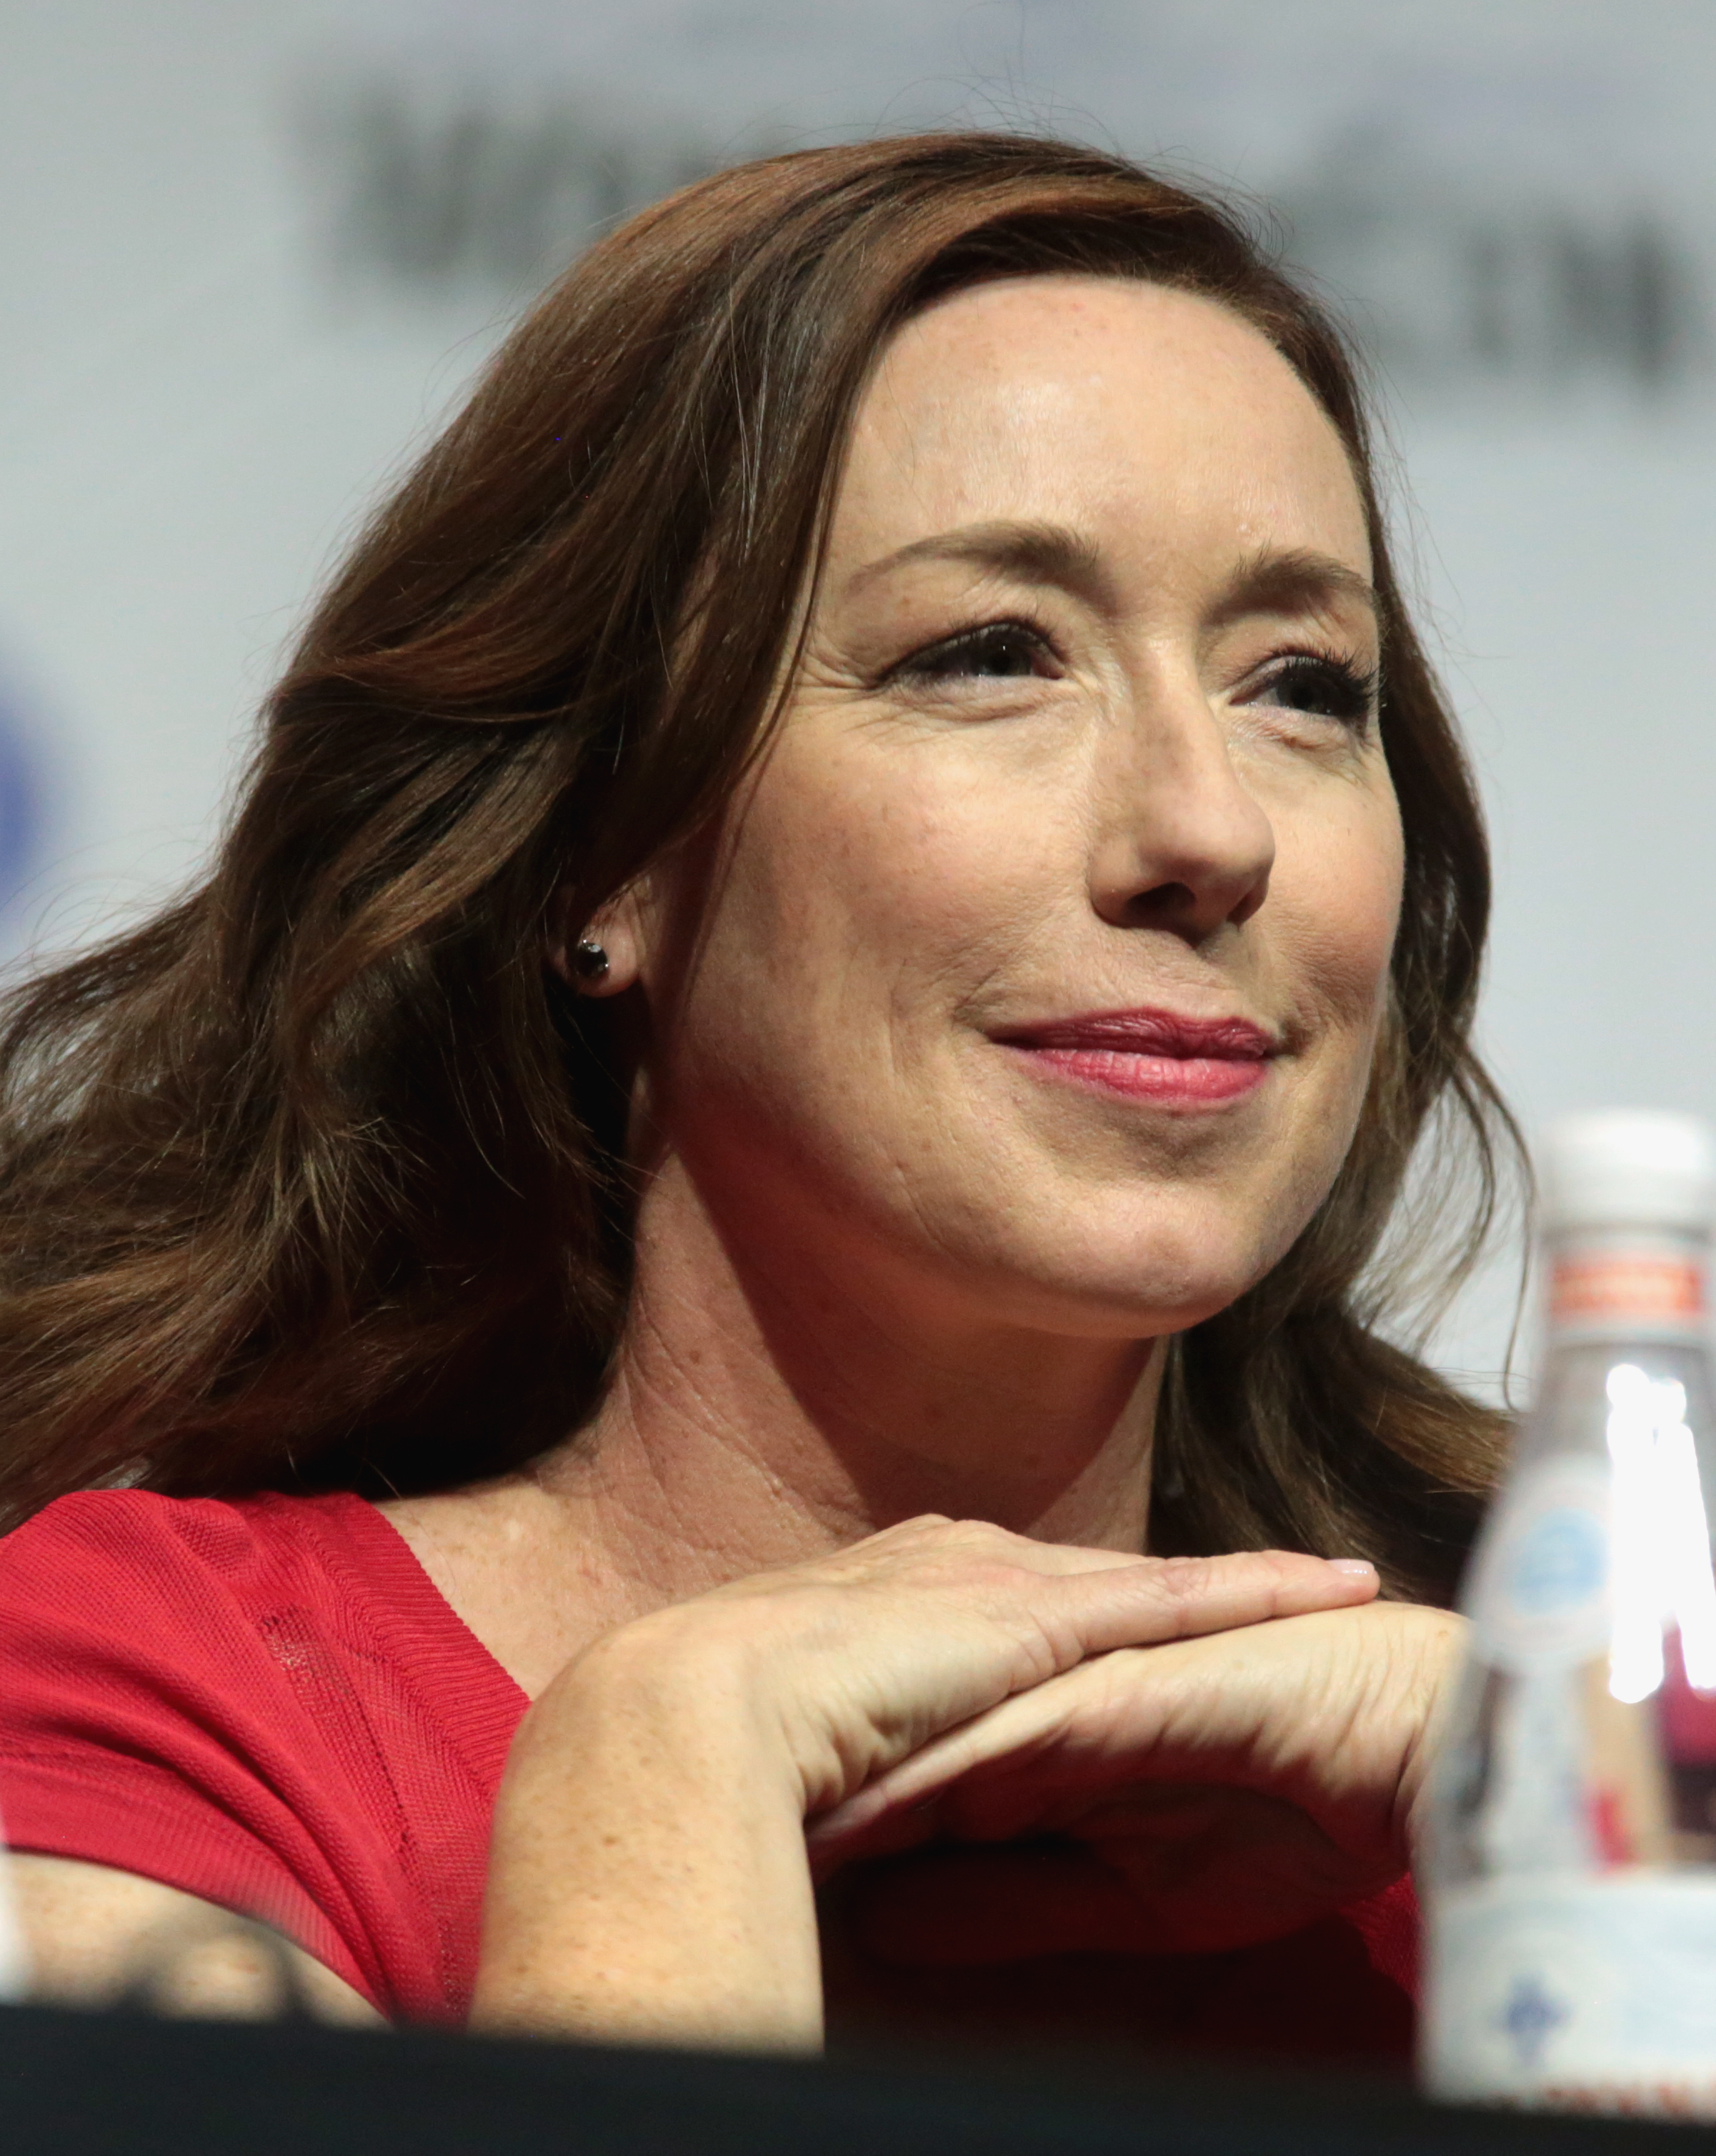 The 46-year old daughter of father (?) and mother(?) Molly Parker in 2018 photo. Molly Parker earned a  million dollar salary - leaving the net worth at 2 million in 2018